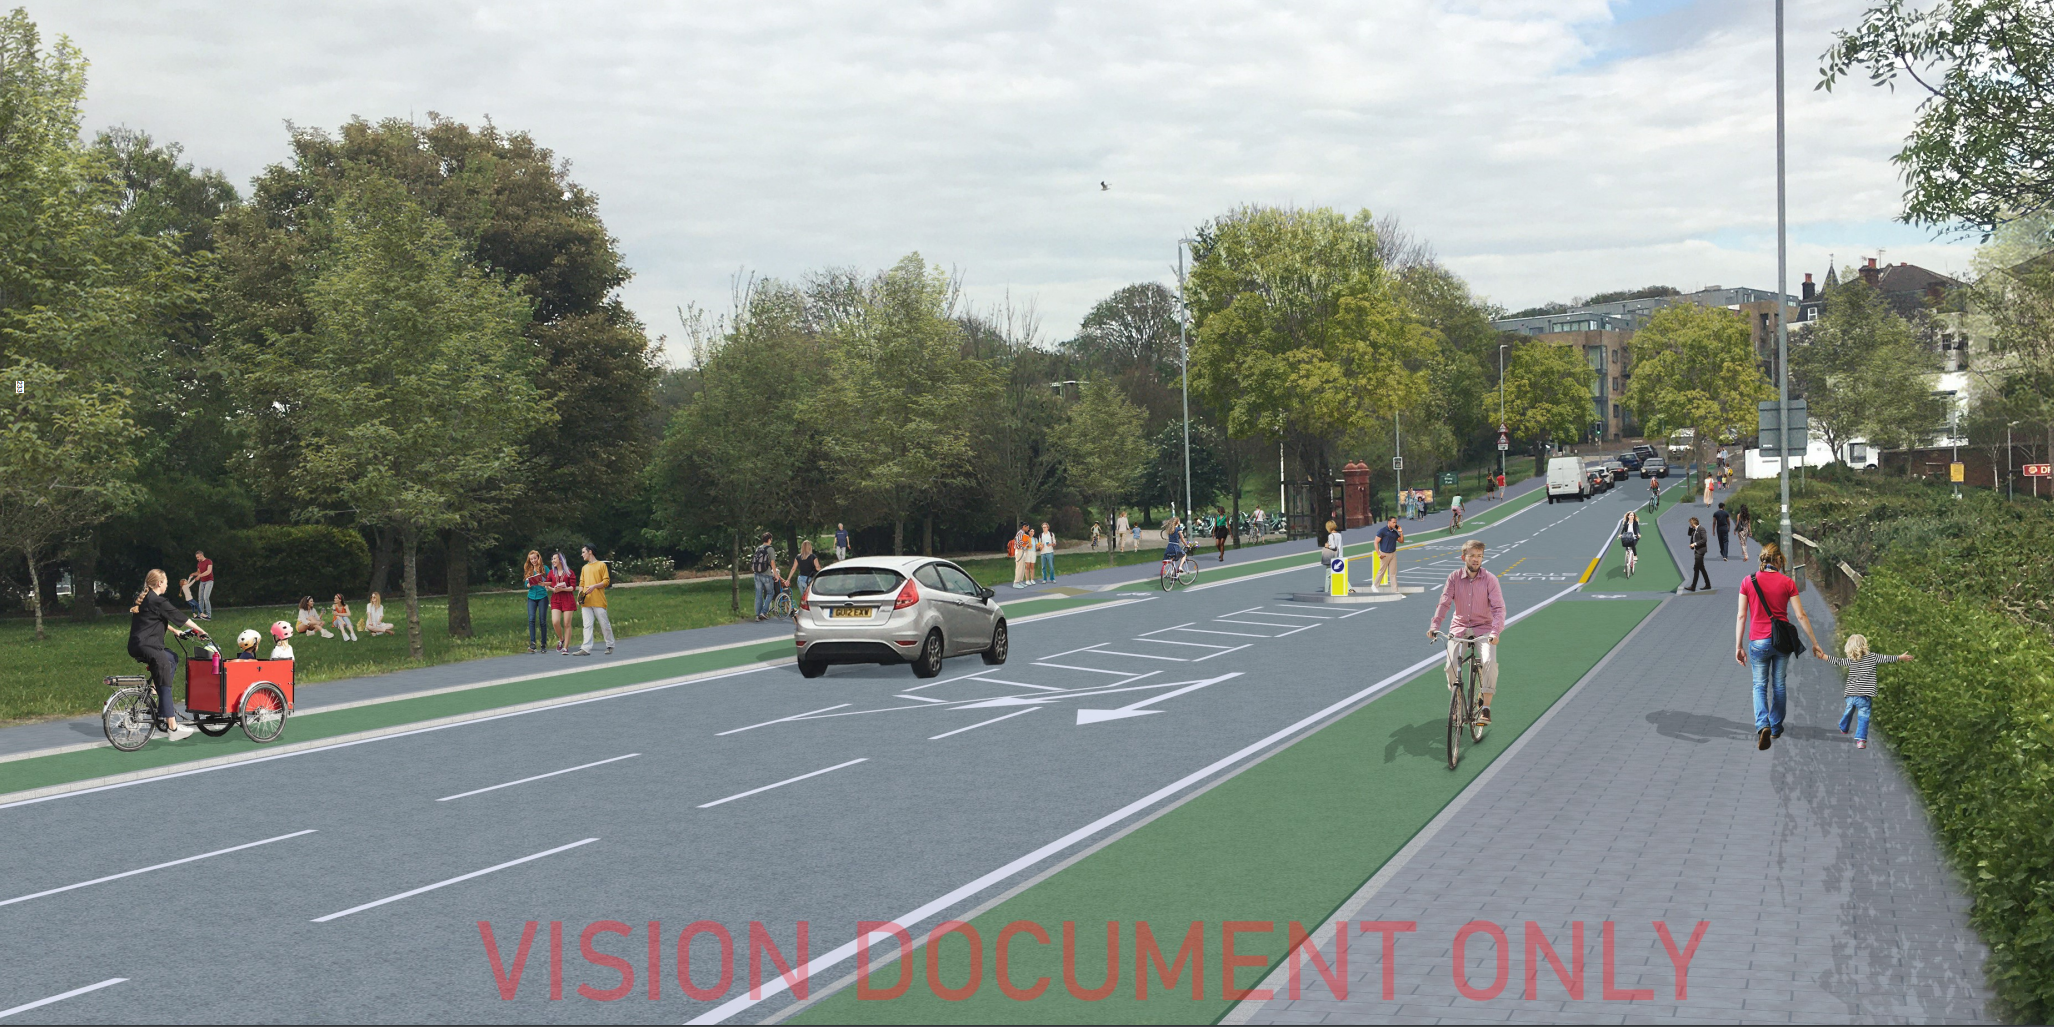 Illustration of a potential stepped cycle lane along Old Shoreham Road (A270) besides Hove Park